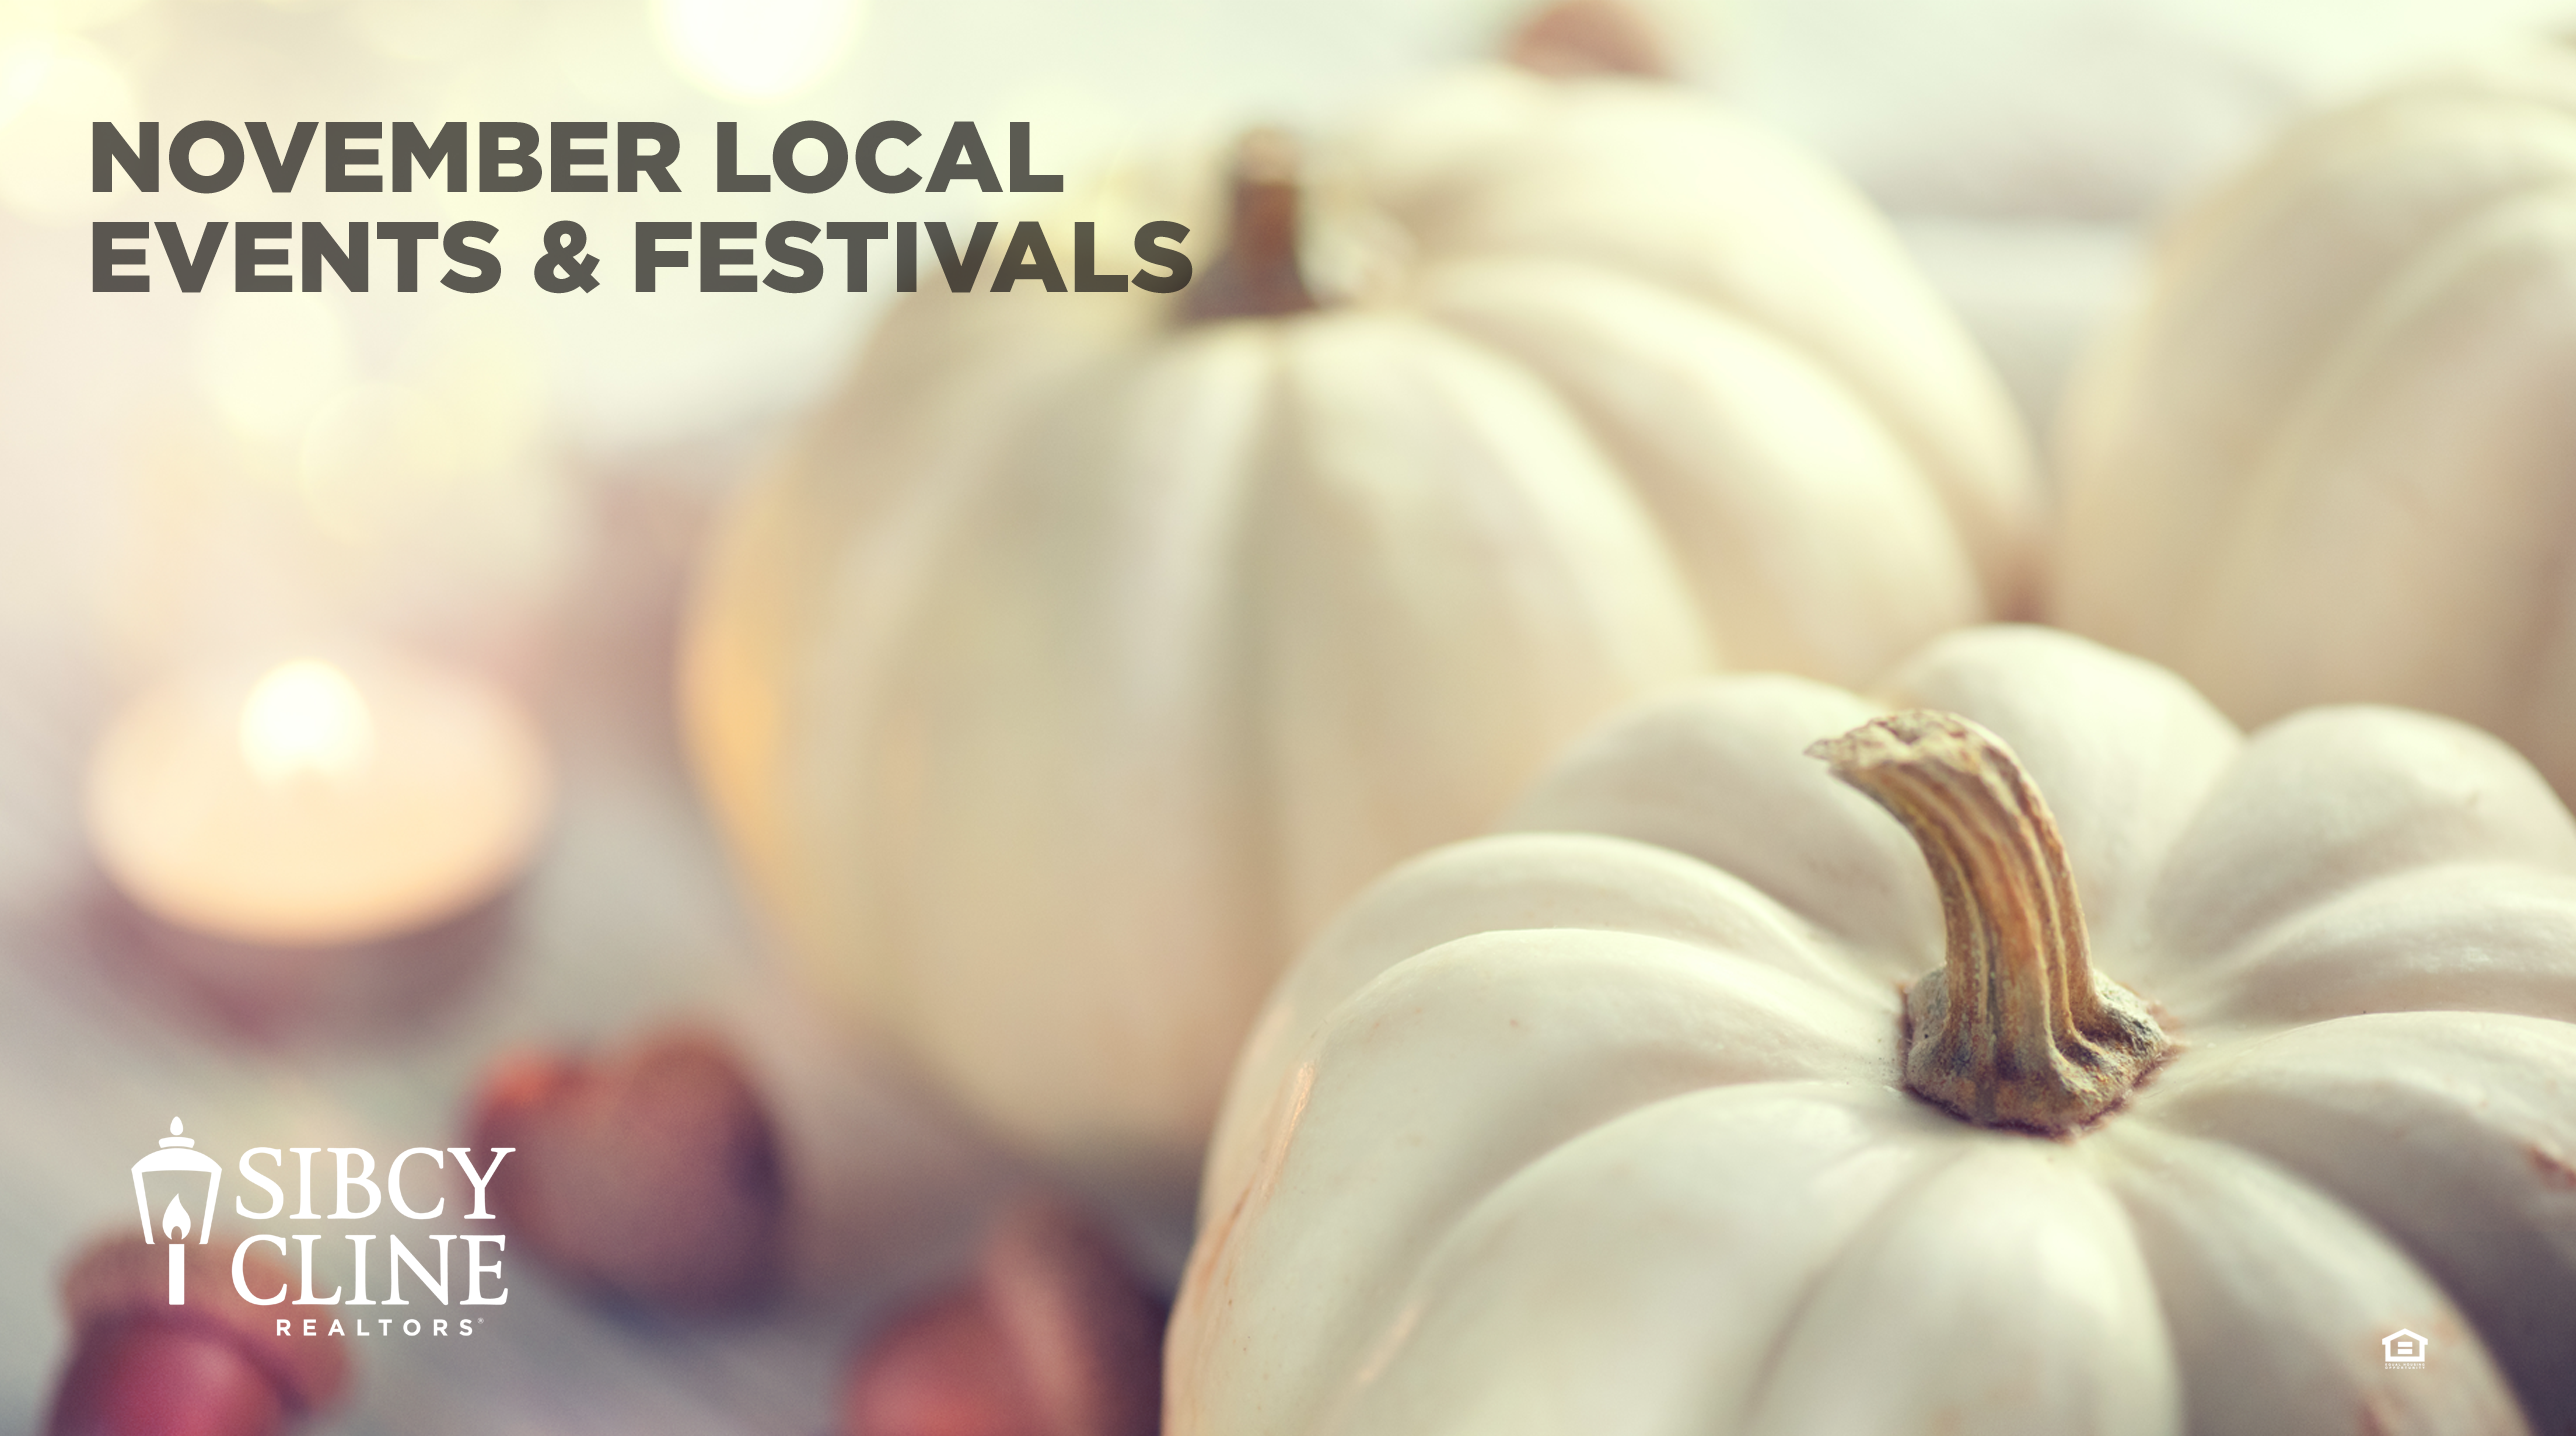 November festivals and events